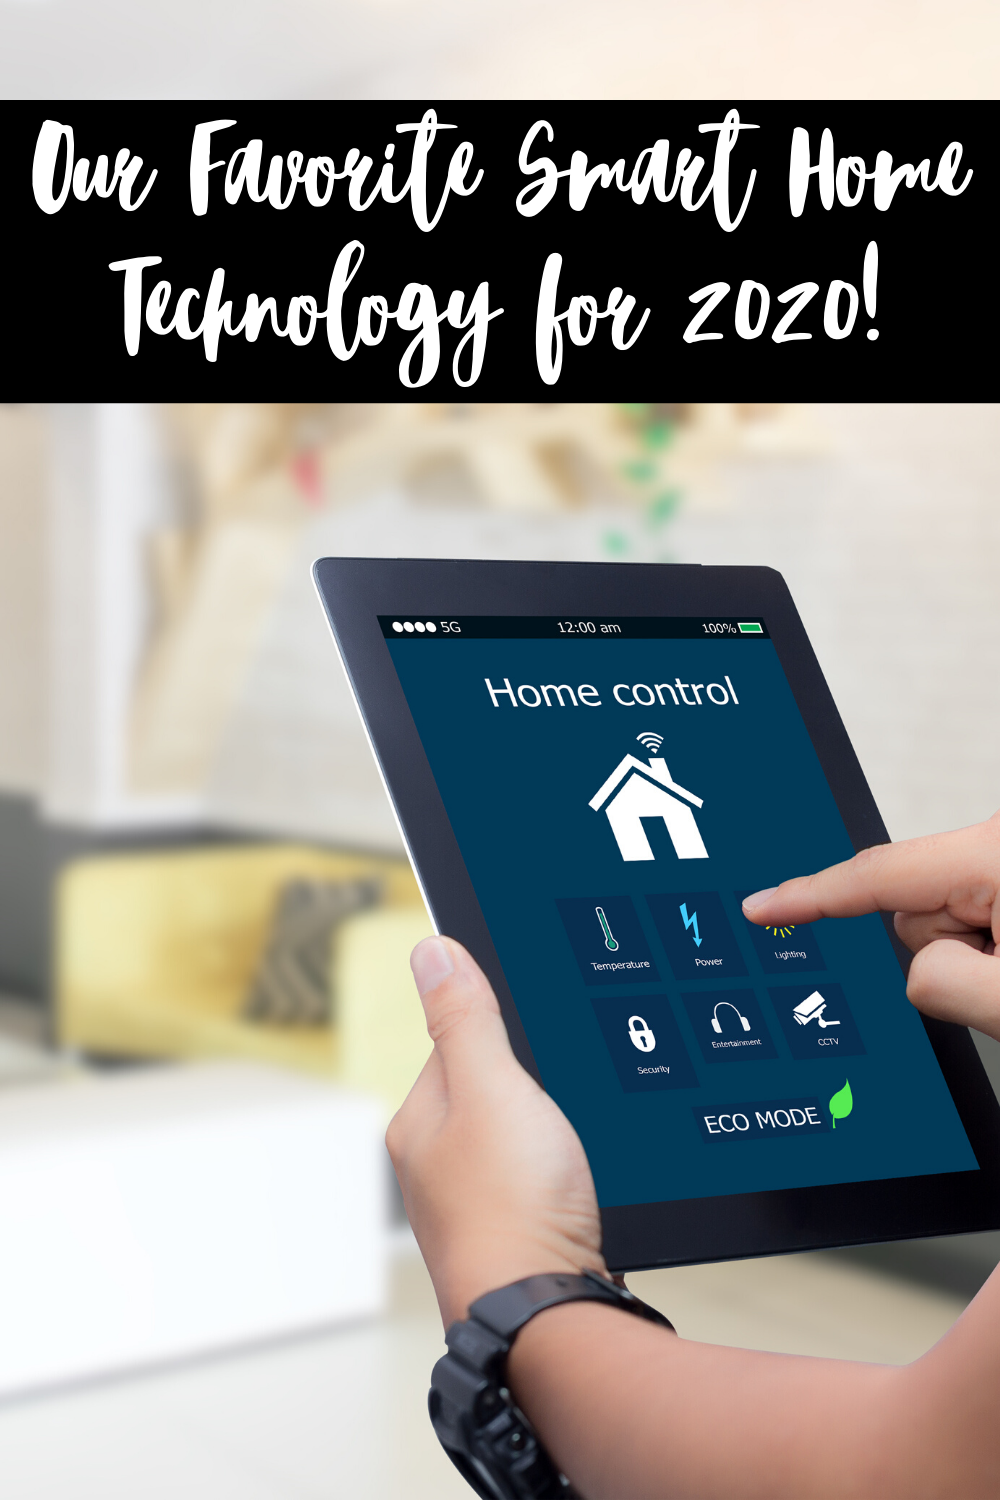 Looking for our favorite smart home technology pieces? You're in the right place. These awesome smart home tech updates are coming to our MCLife communities and renovated Houston apartments in 2020!